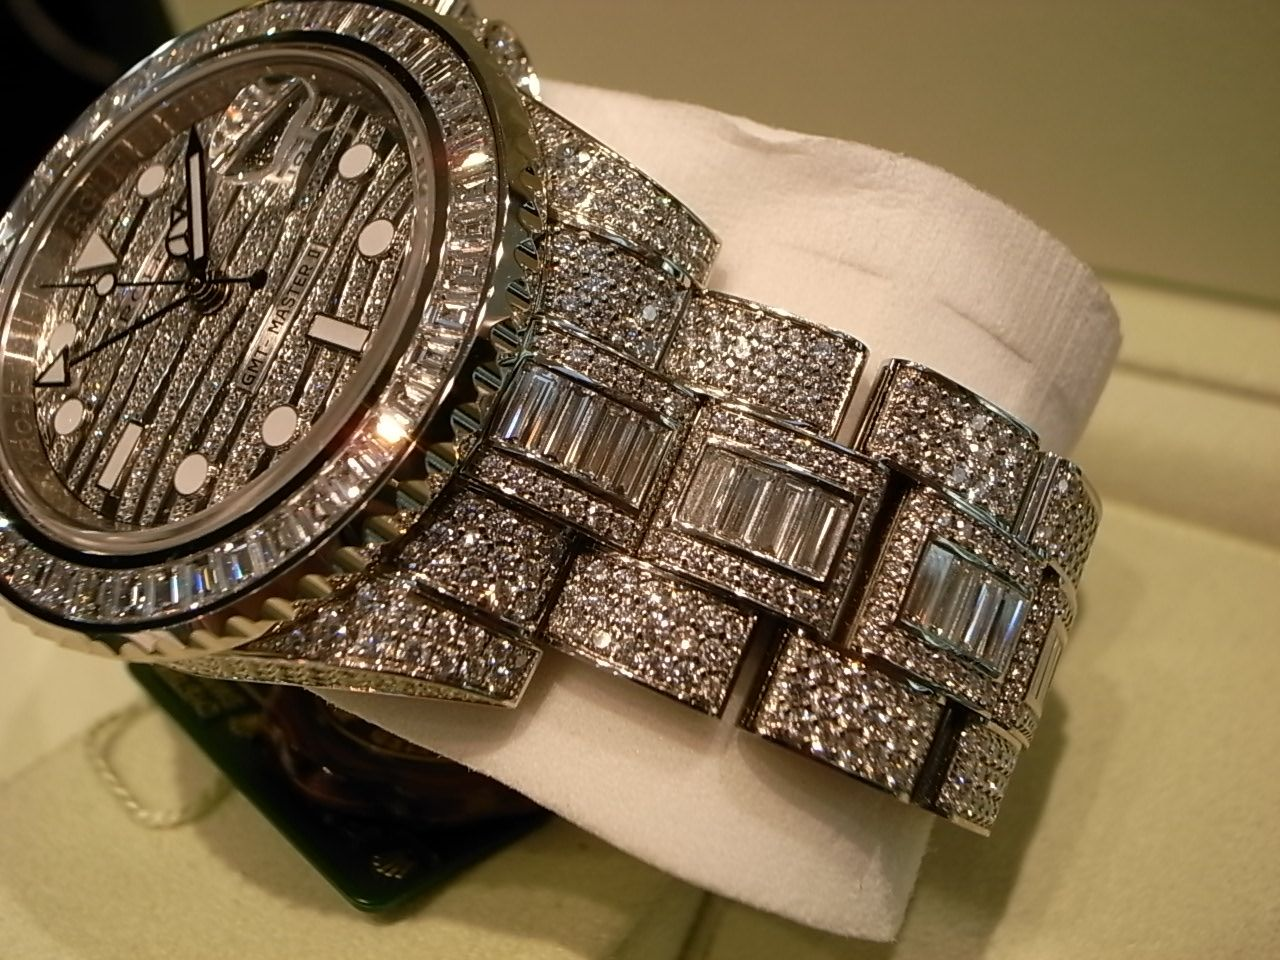 25 Most Expensive Rolex Watches In The World Watches Rolex